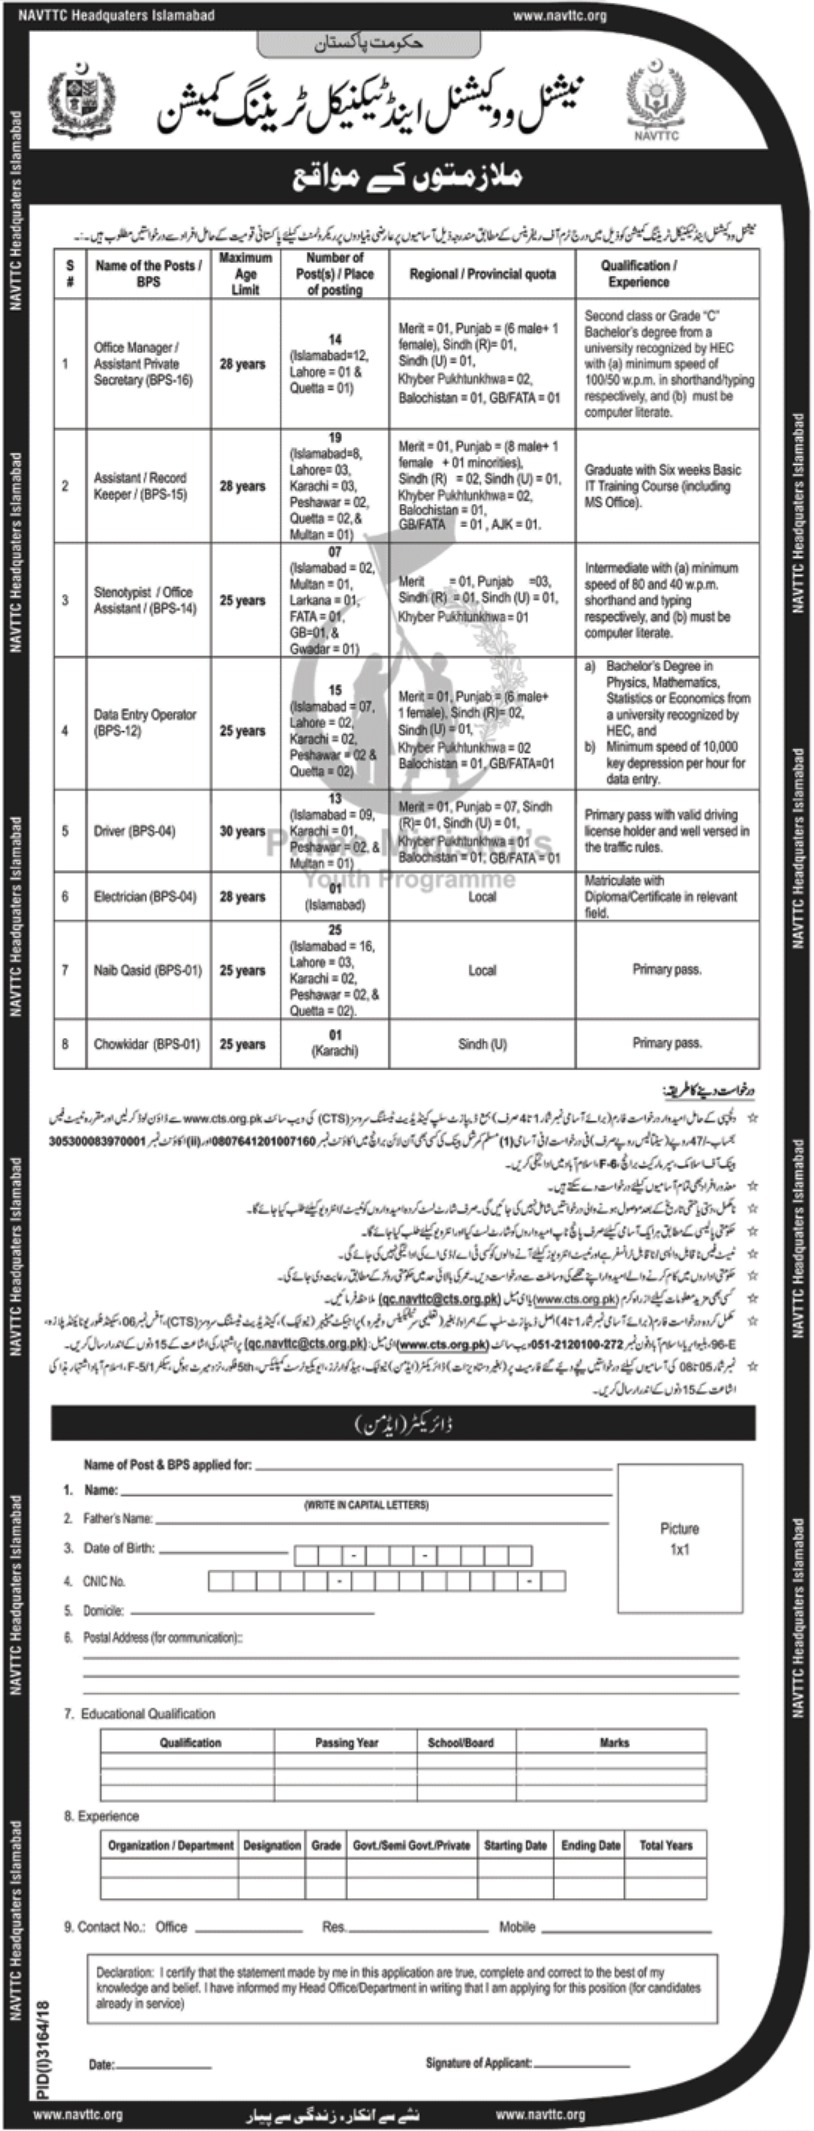 NAVTTC Islamabad Jobs 2019 National Vocational & Technical Training Commission